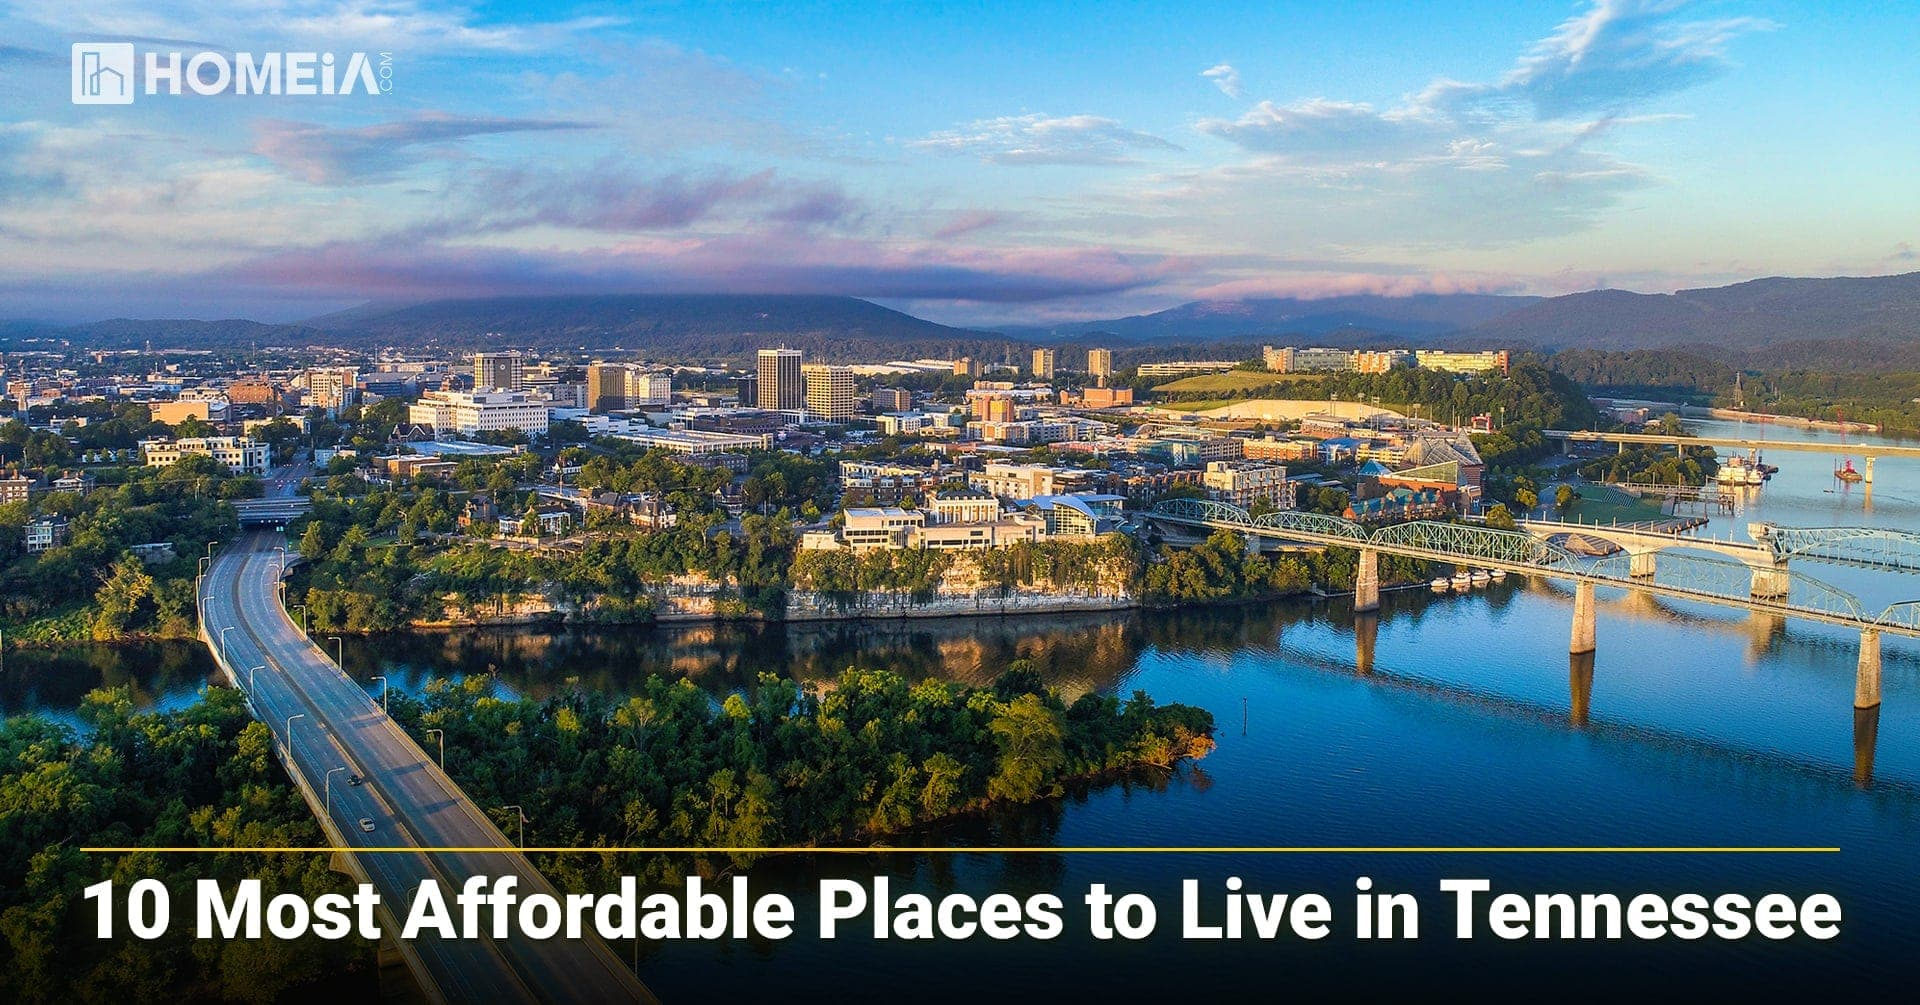 Most Affordable Places You Should Know BEFORE Moving to Tennessee